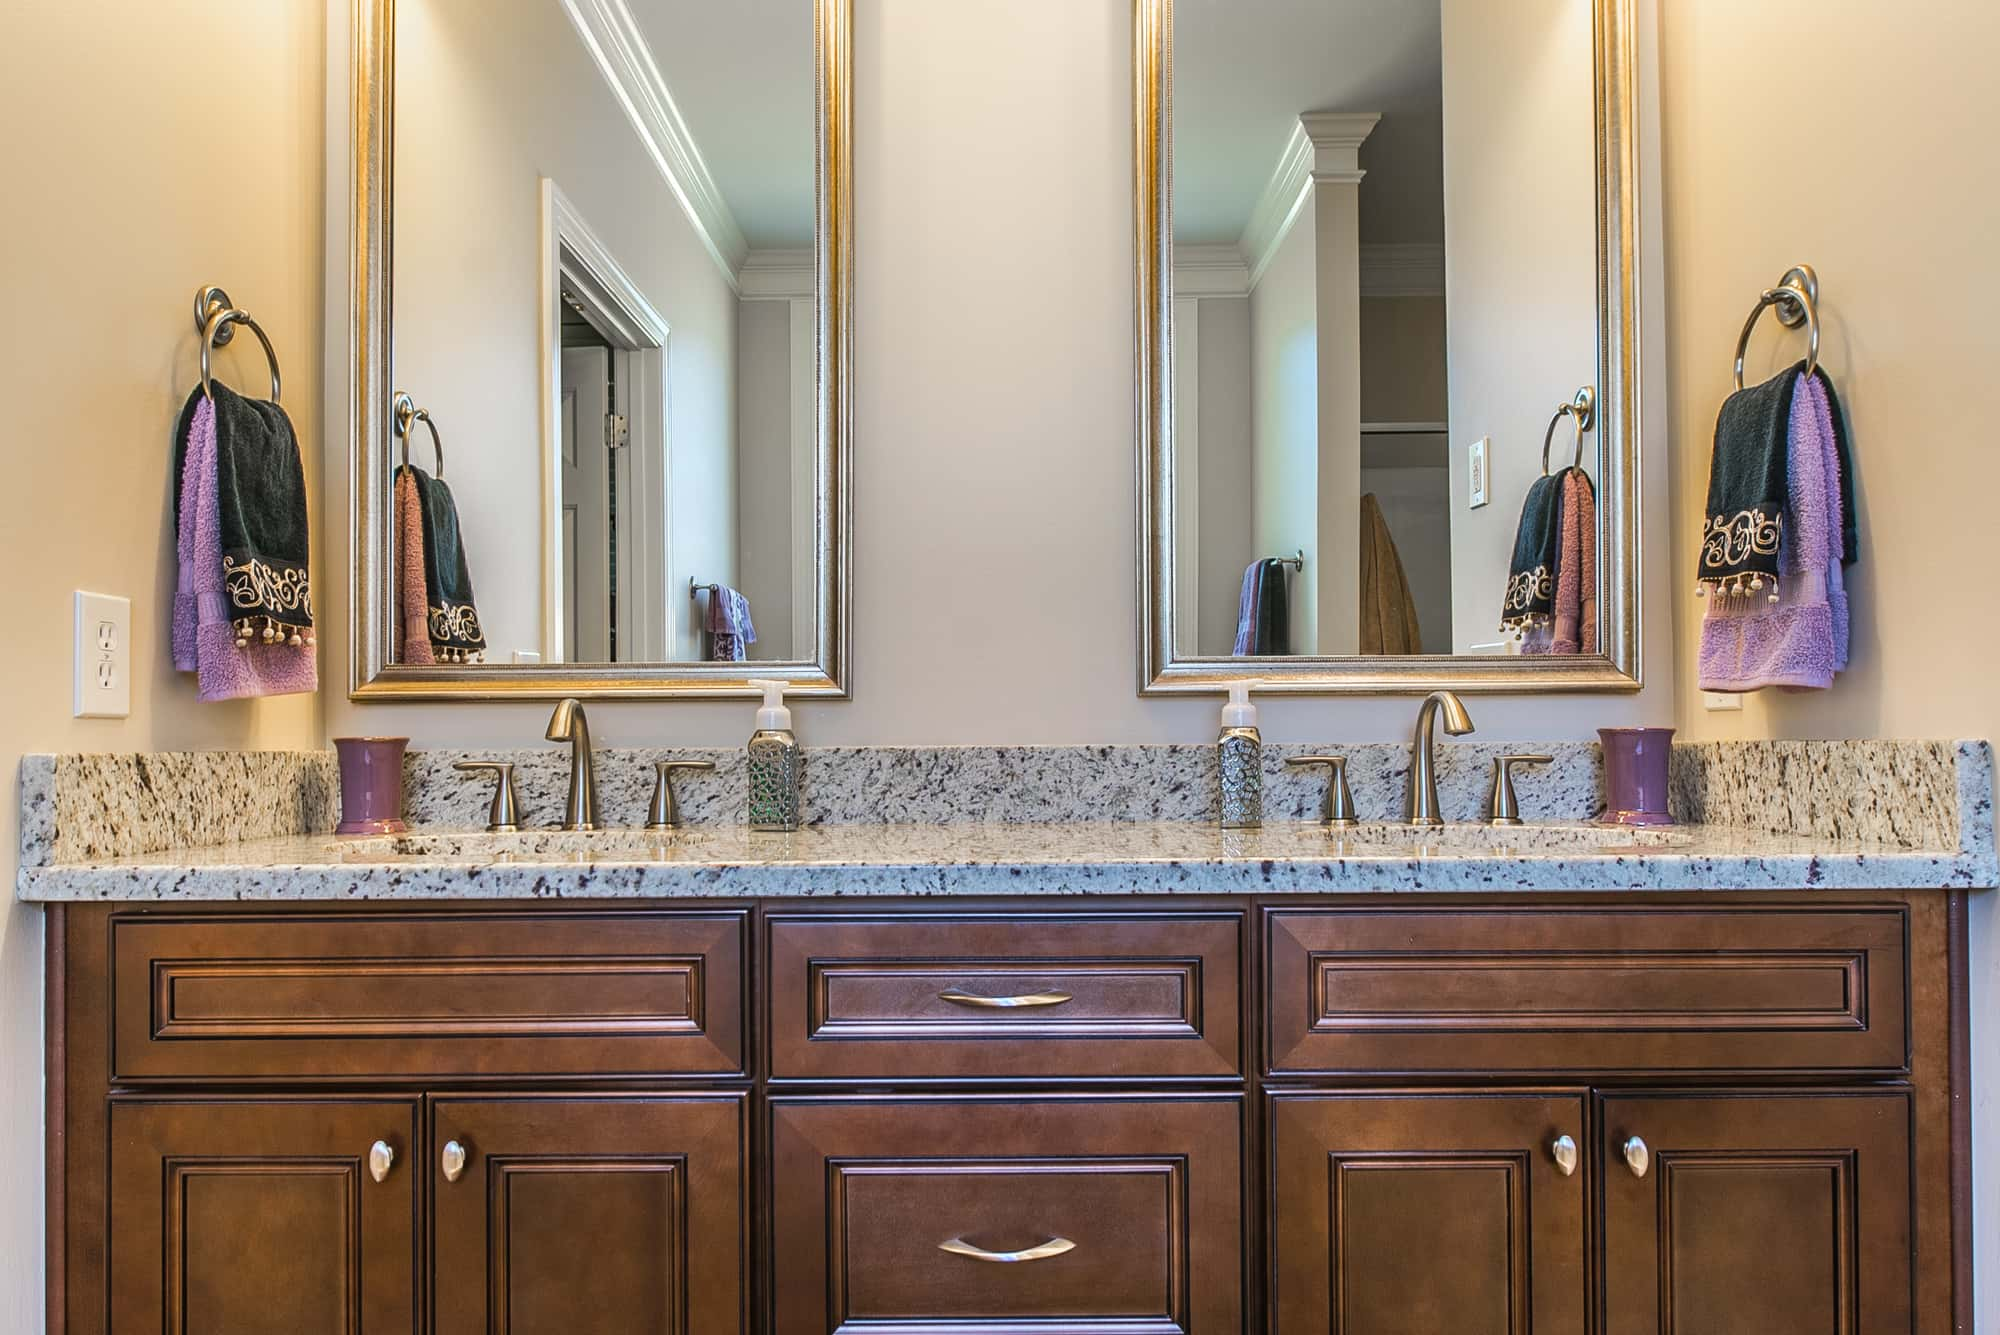 Bathroom vanities affordable luxury in Saddle Brown at North South Carolina